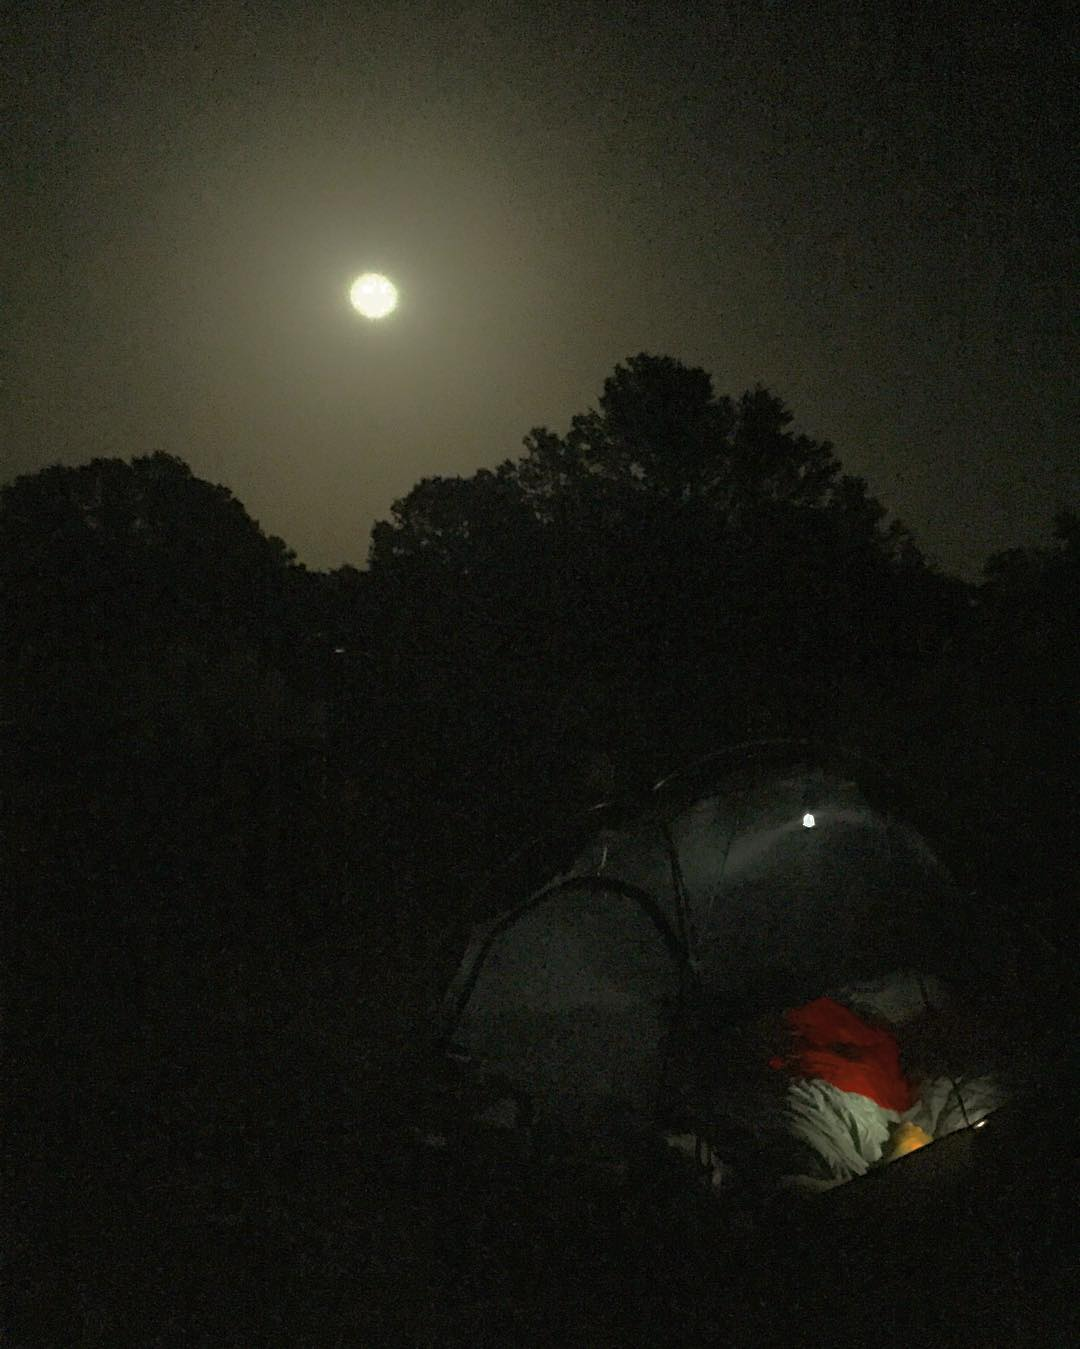 A grand end to a grand trip. Had to leave the fly off to enjoy the Summer Solstice warm air and the view of the Strawberry Full Moon over our tent. #roadtrip #roadtrippinwithrachel #camping #summer #summersolstice #strawberrymoon